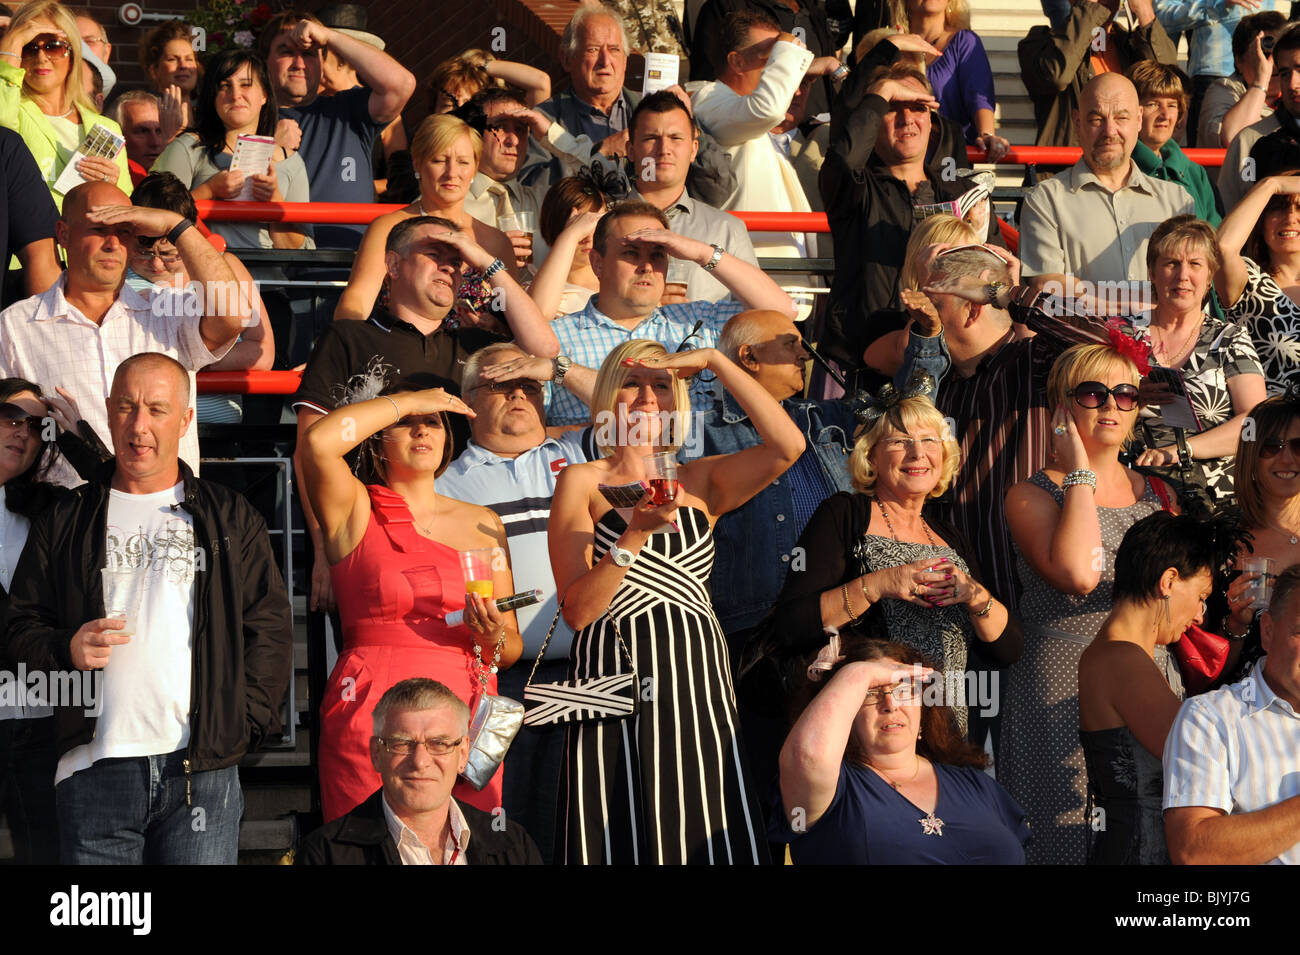 Ladies Night in Wolverhampton Racecourse... Stockbild